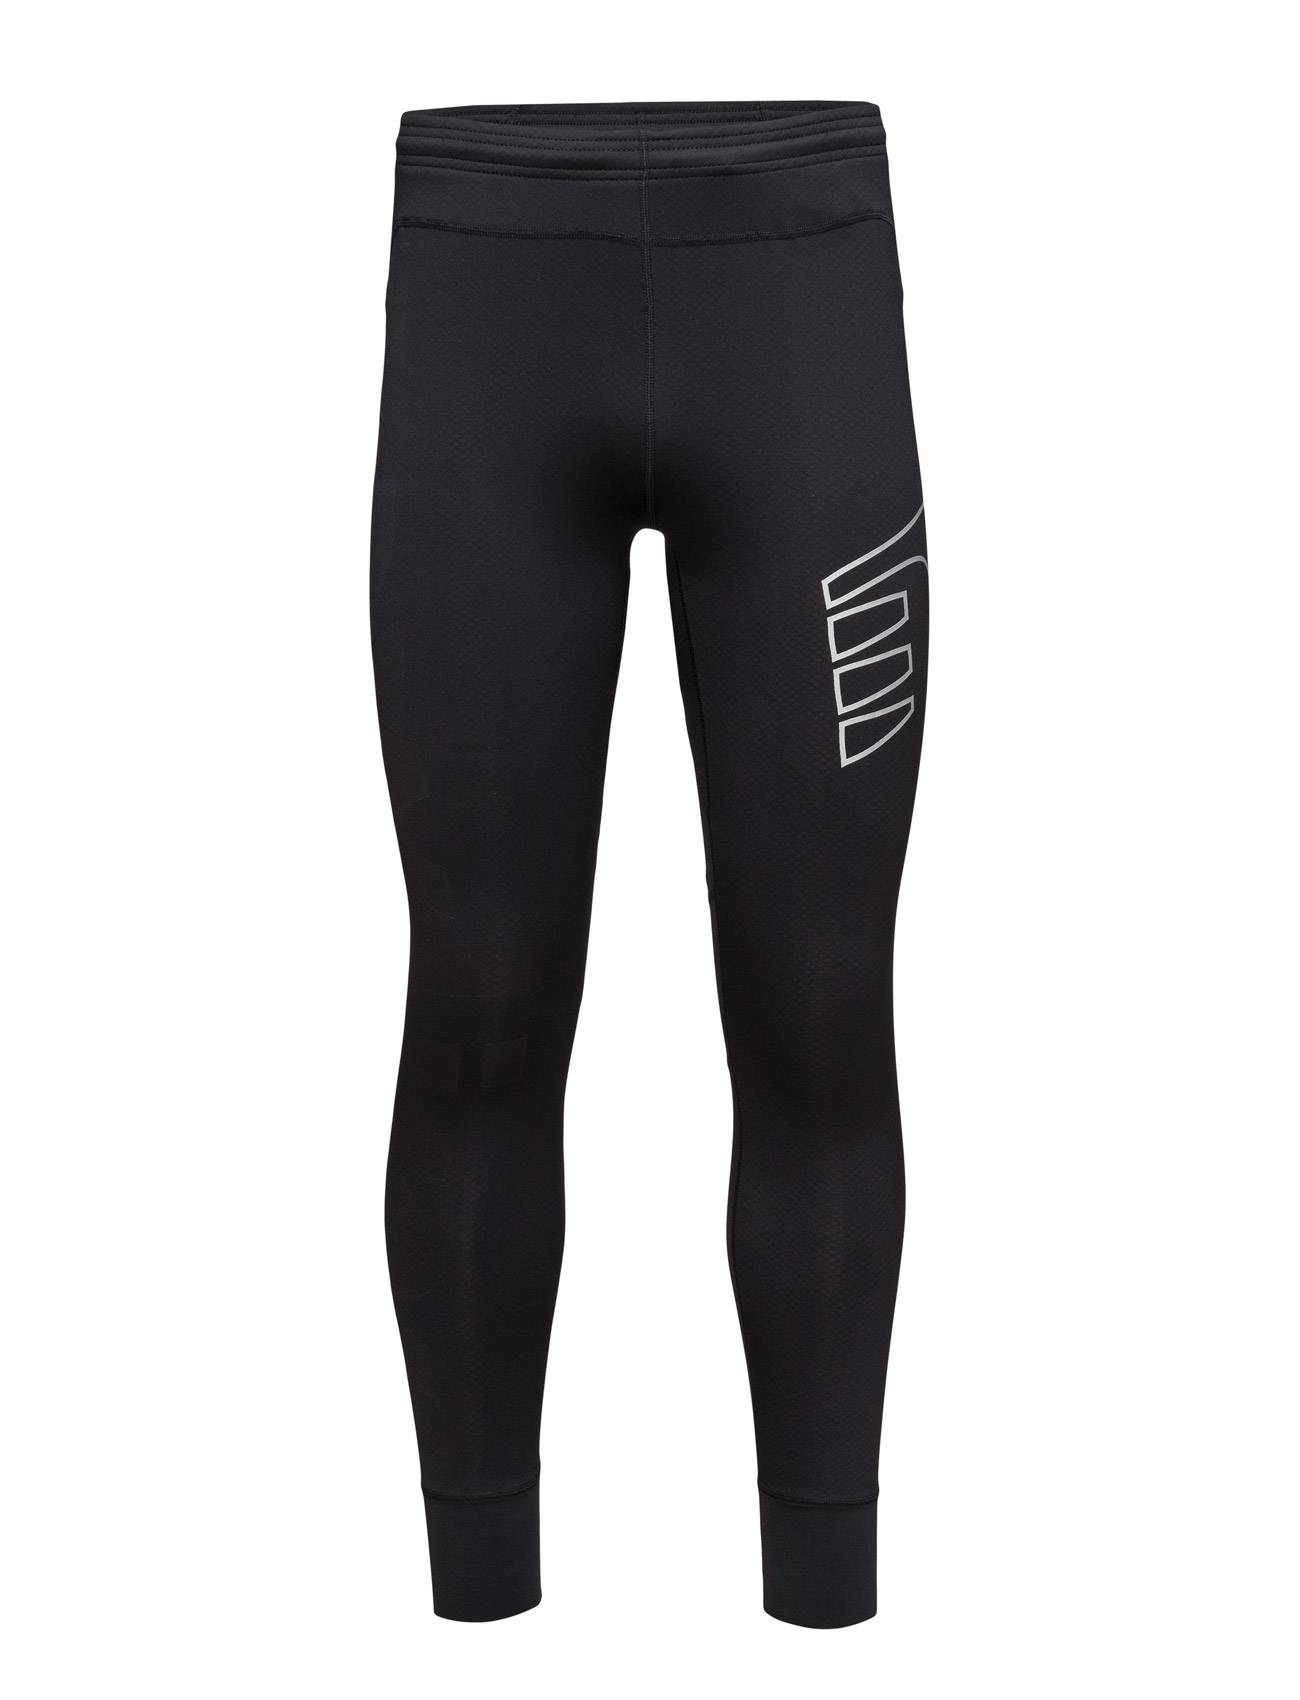 Newline Iconic Thermal Power Tights